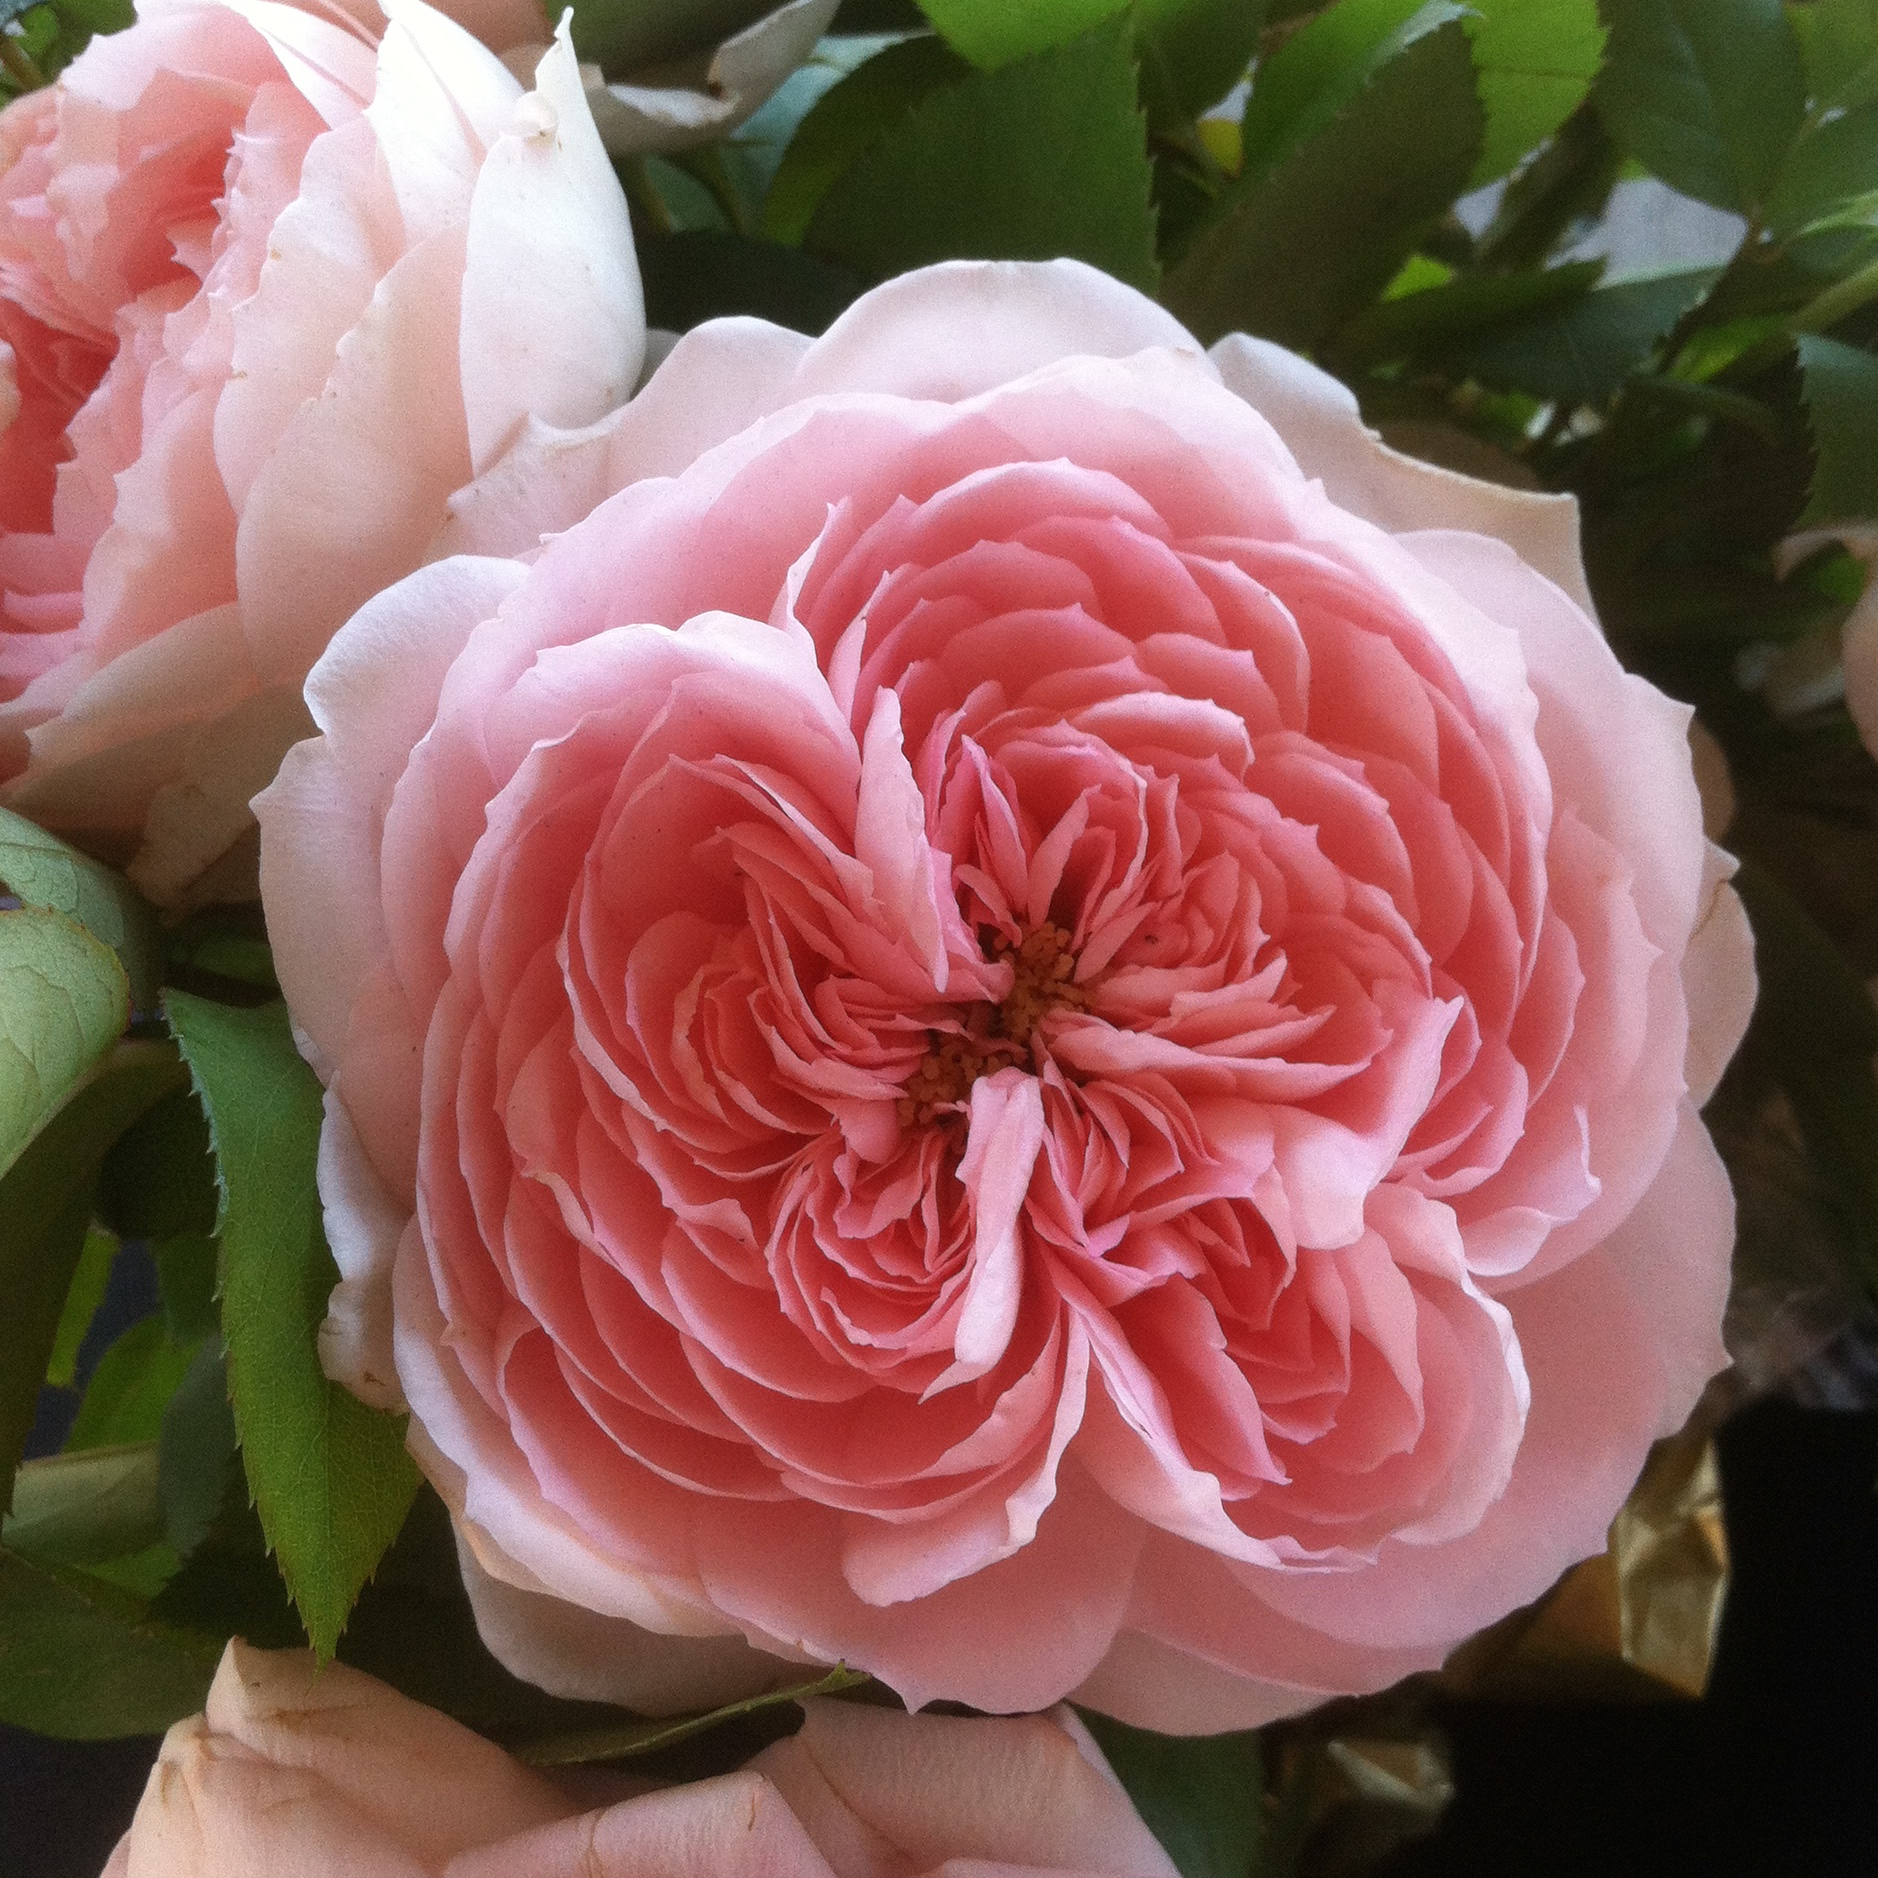 A beautiful bunch of garden roses with a rich fragrance and the most beautifully shaped petals.